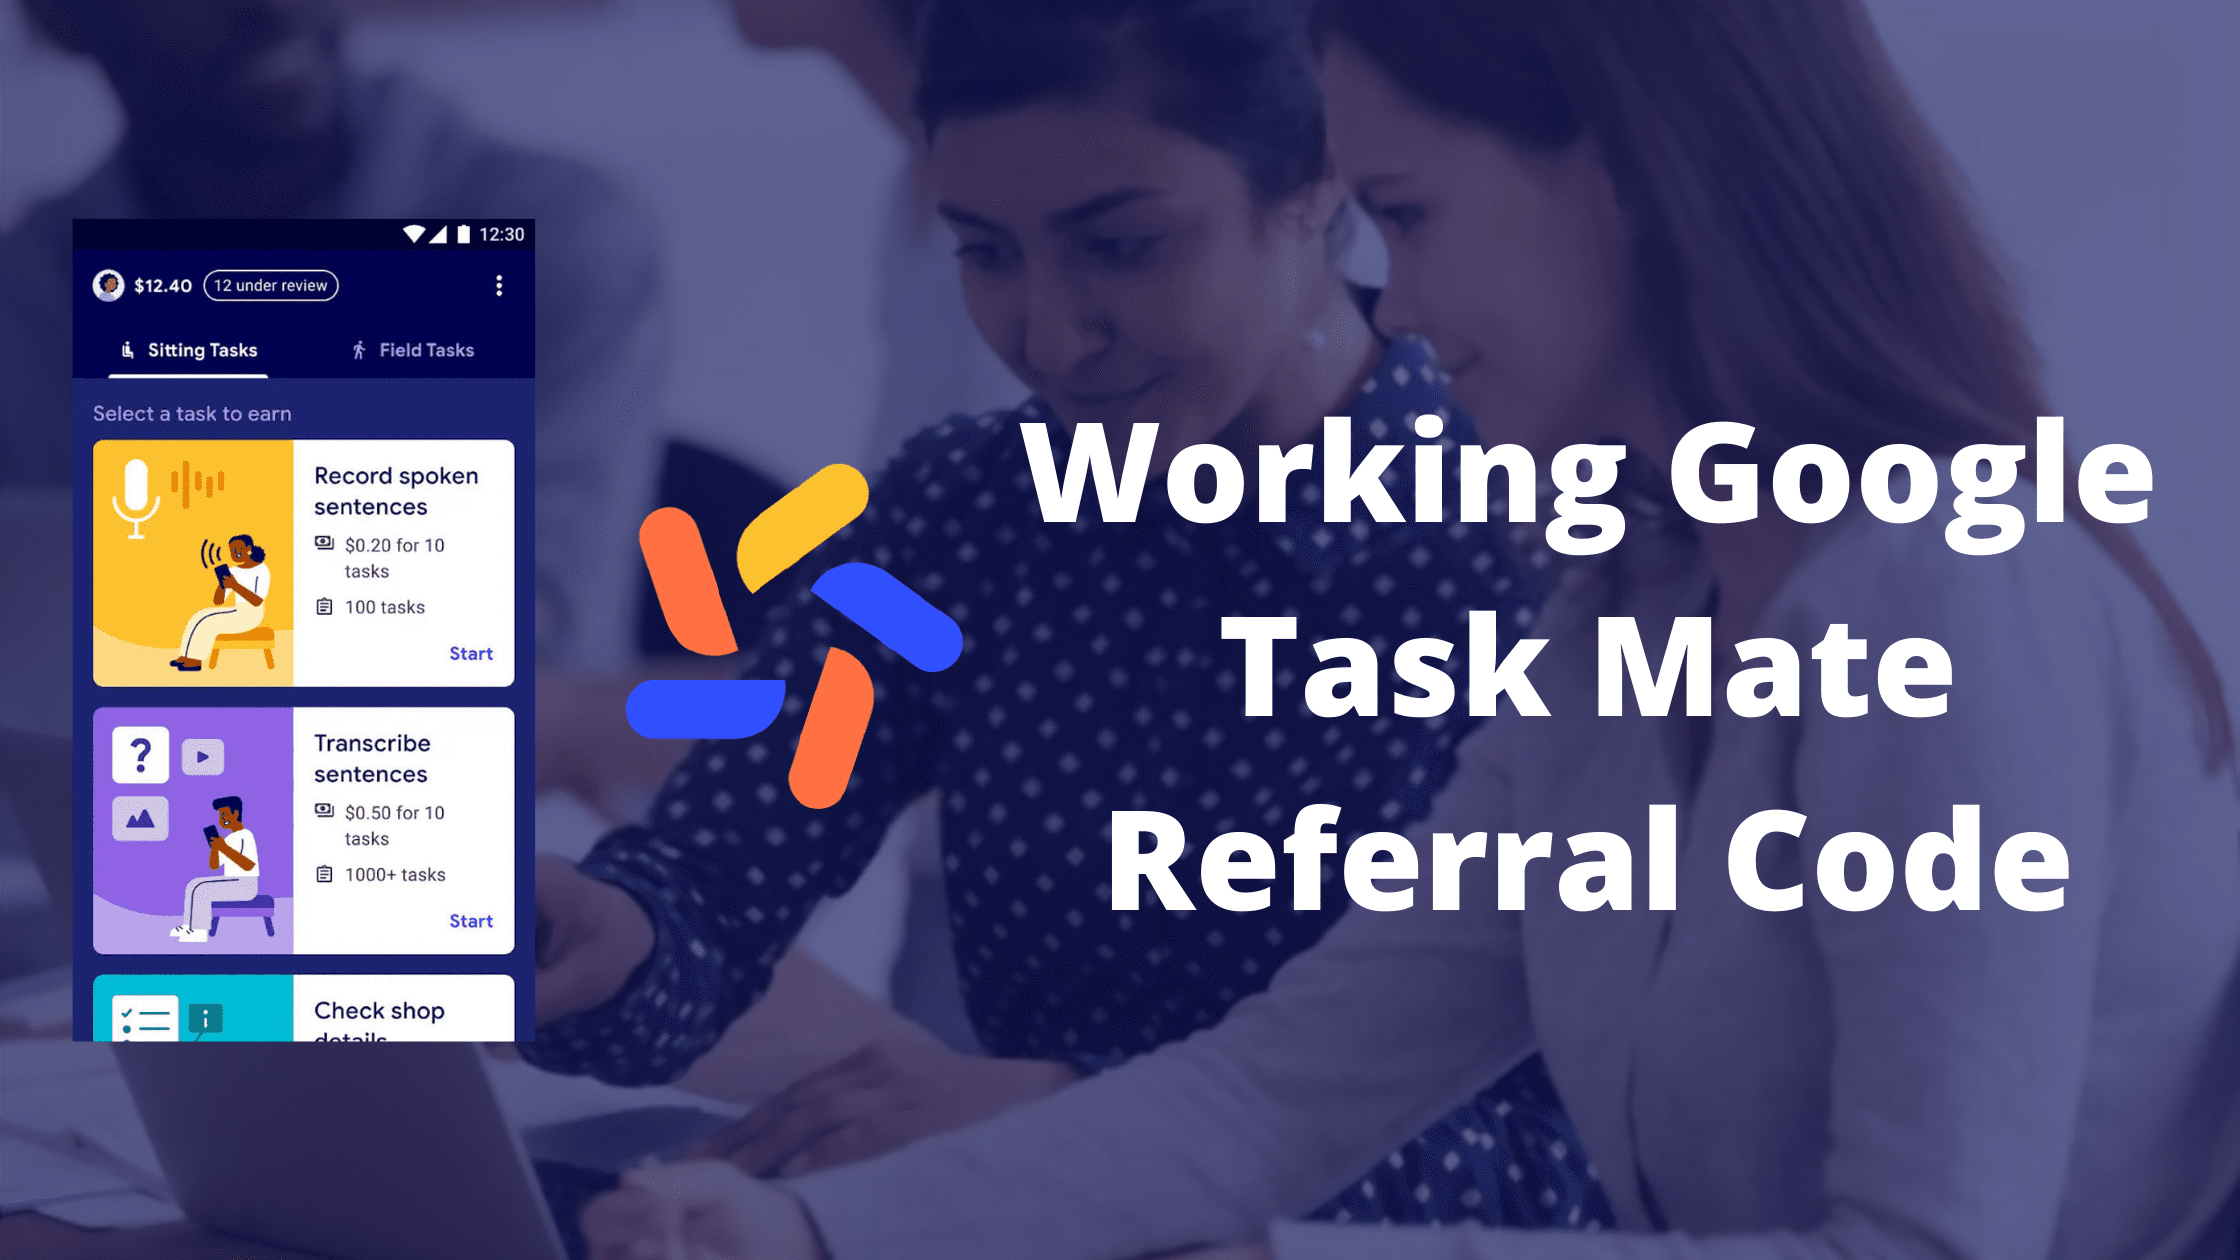 Working Google Task Mate Referral Code